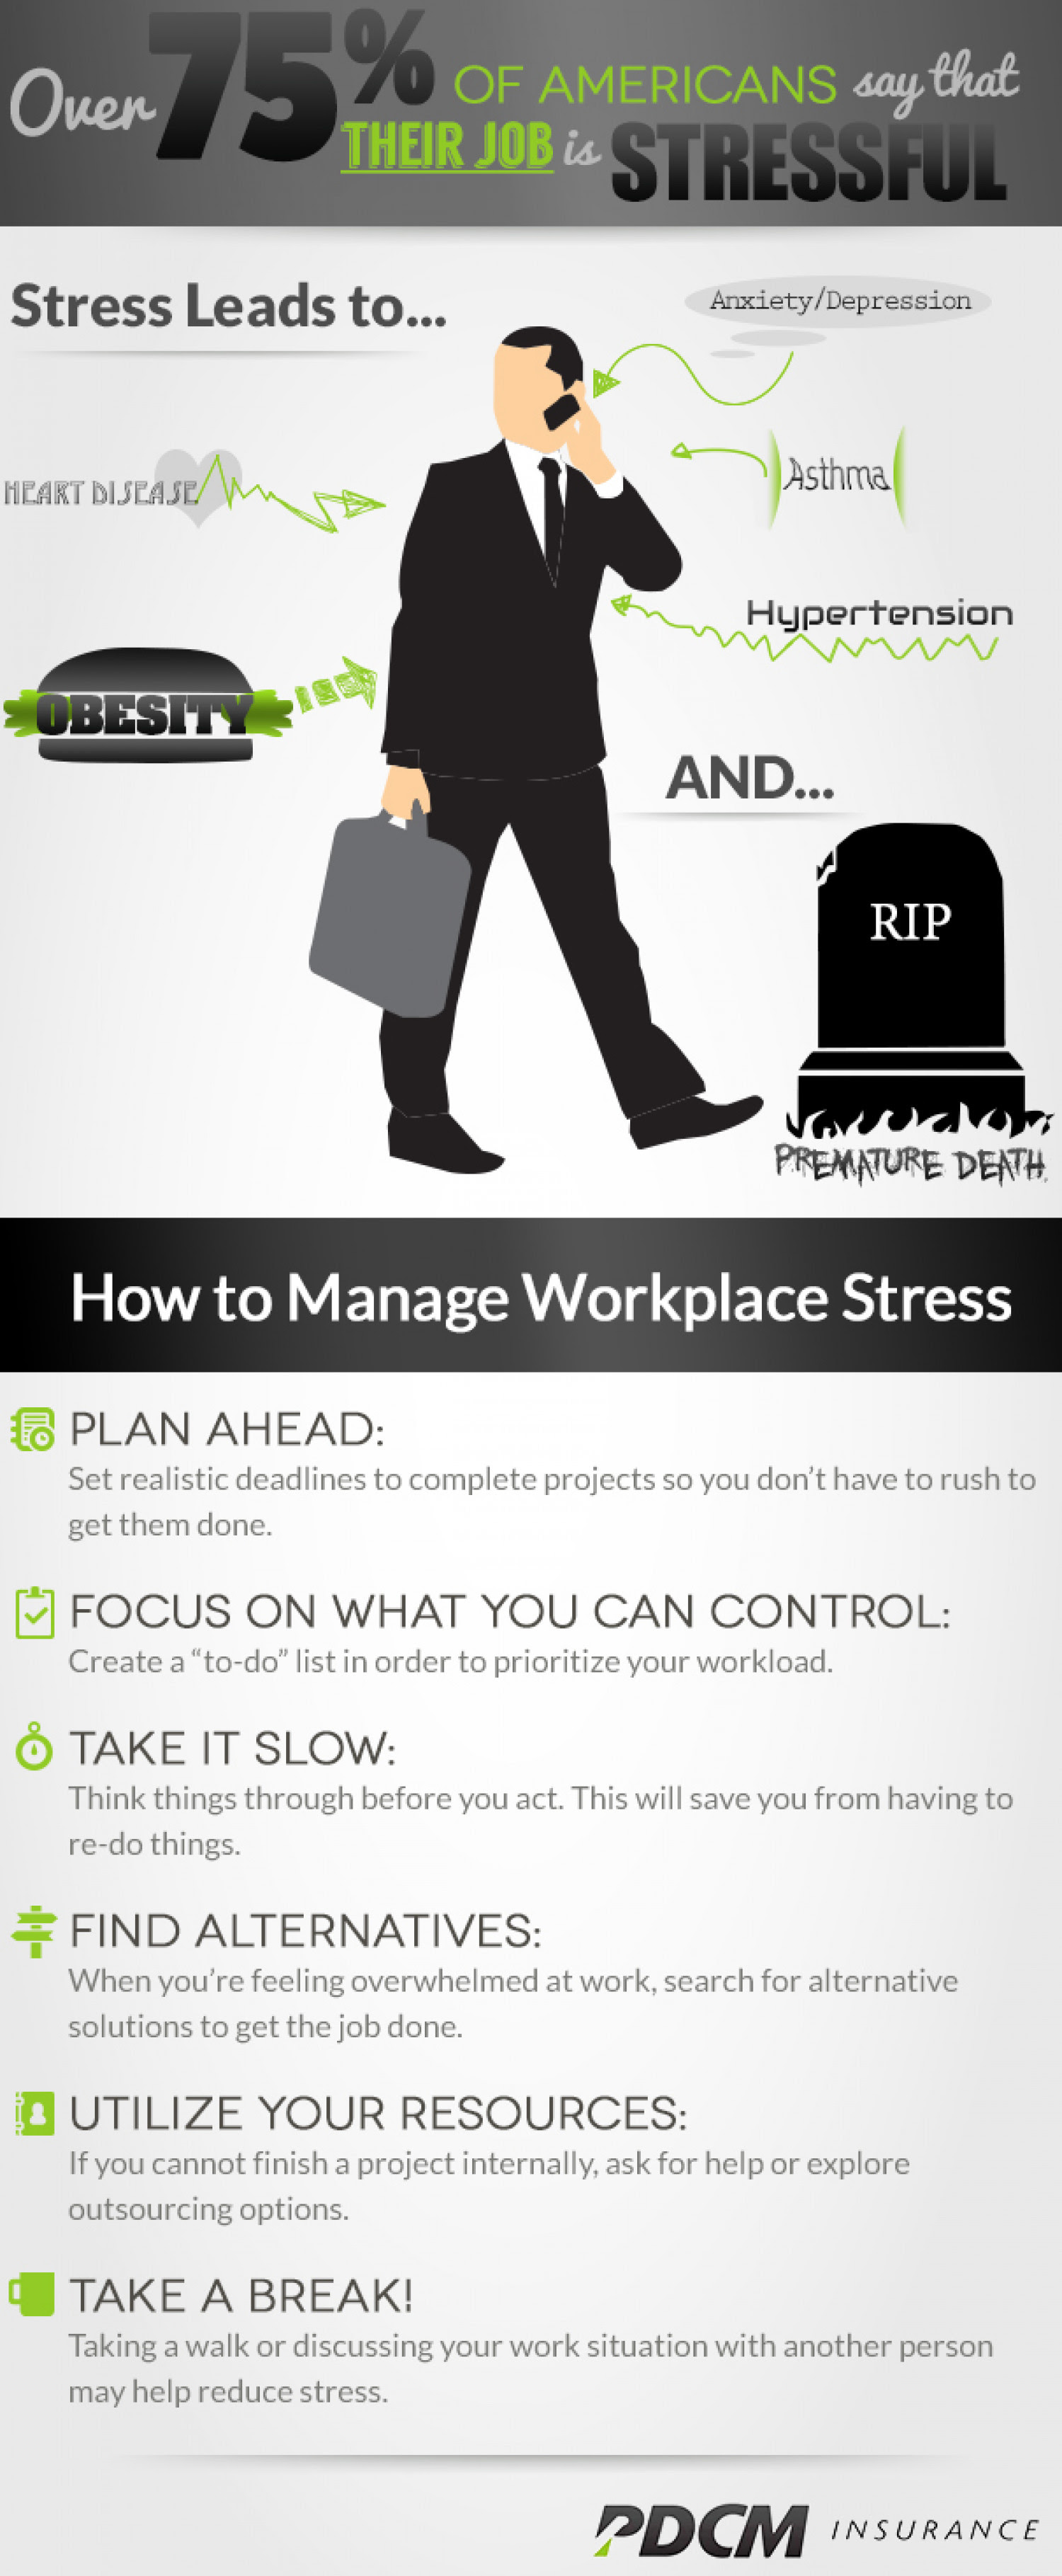 Stress Management Techniques for Workplace Stress | Visual.ly